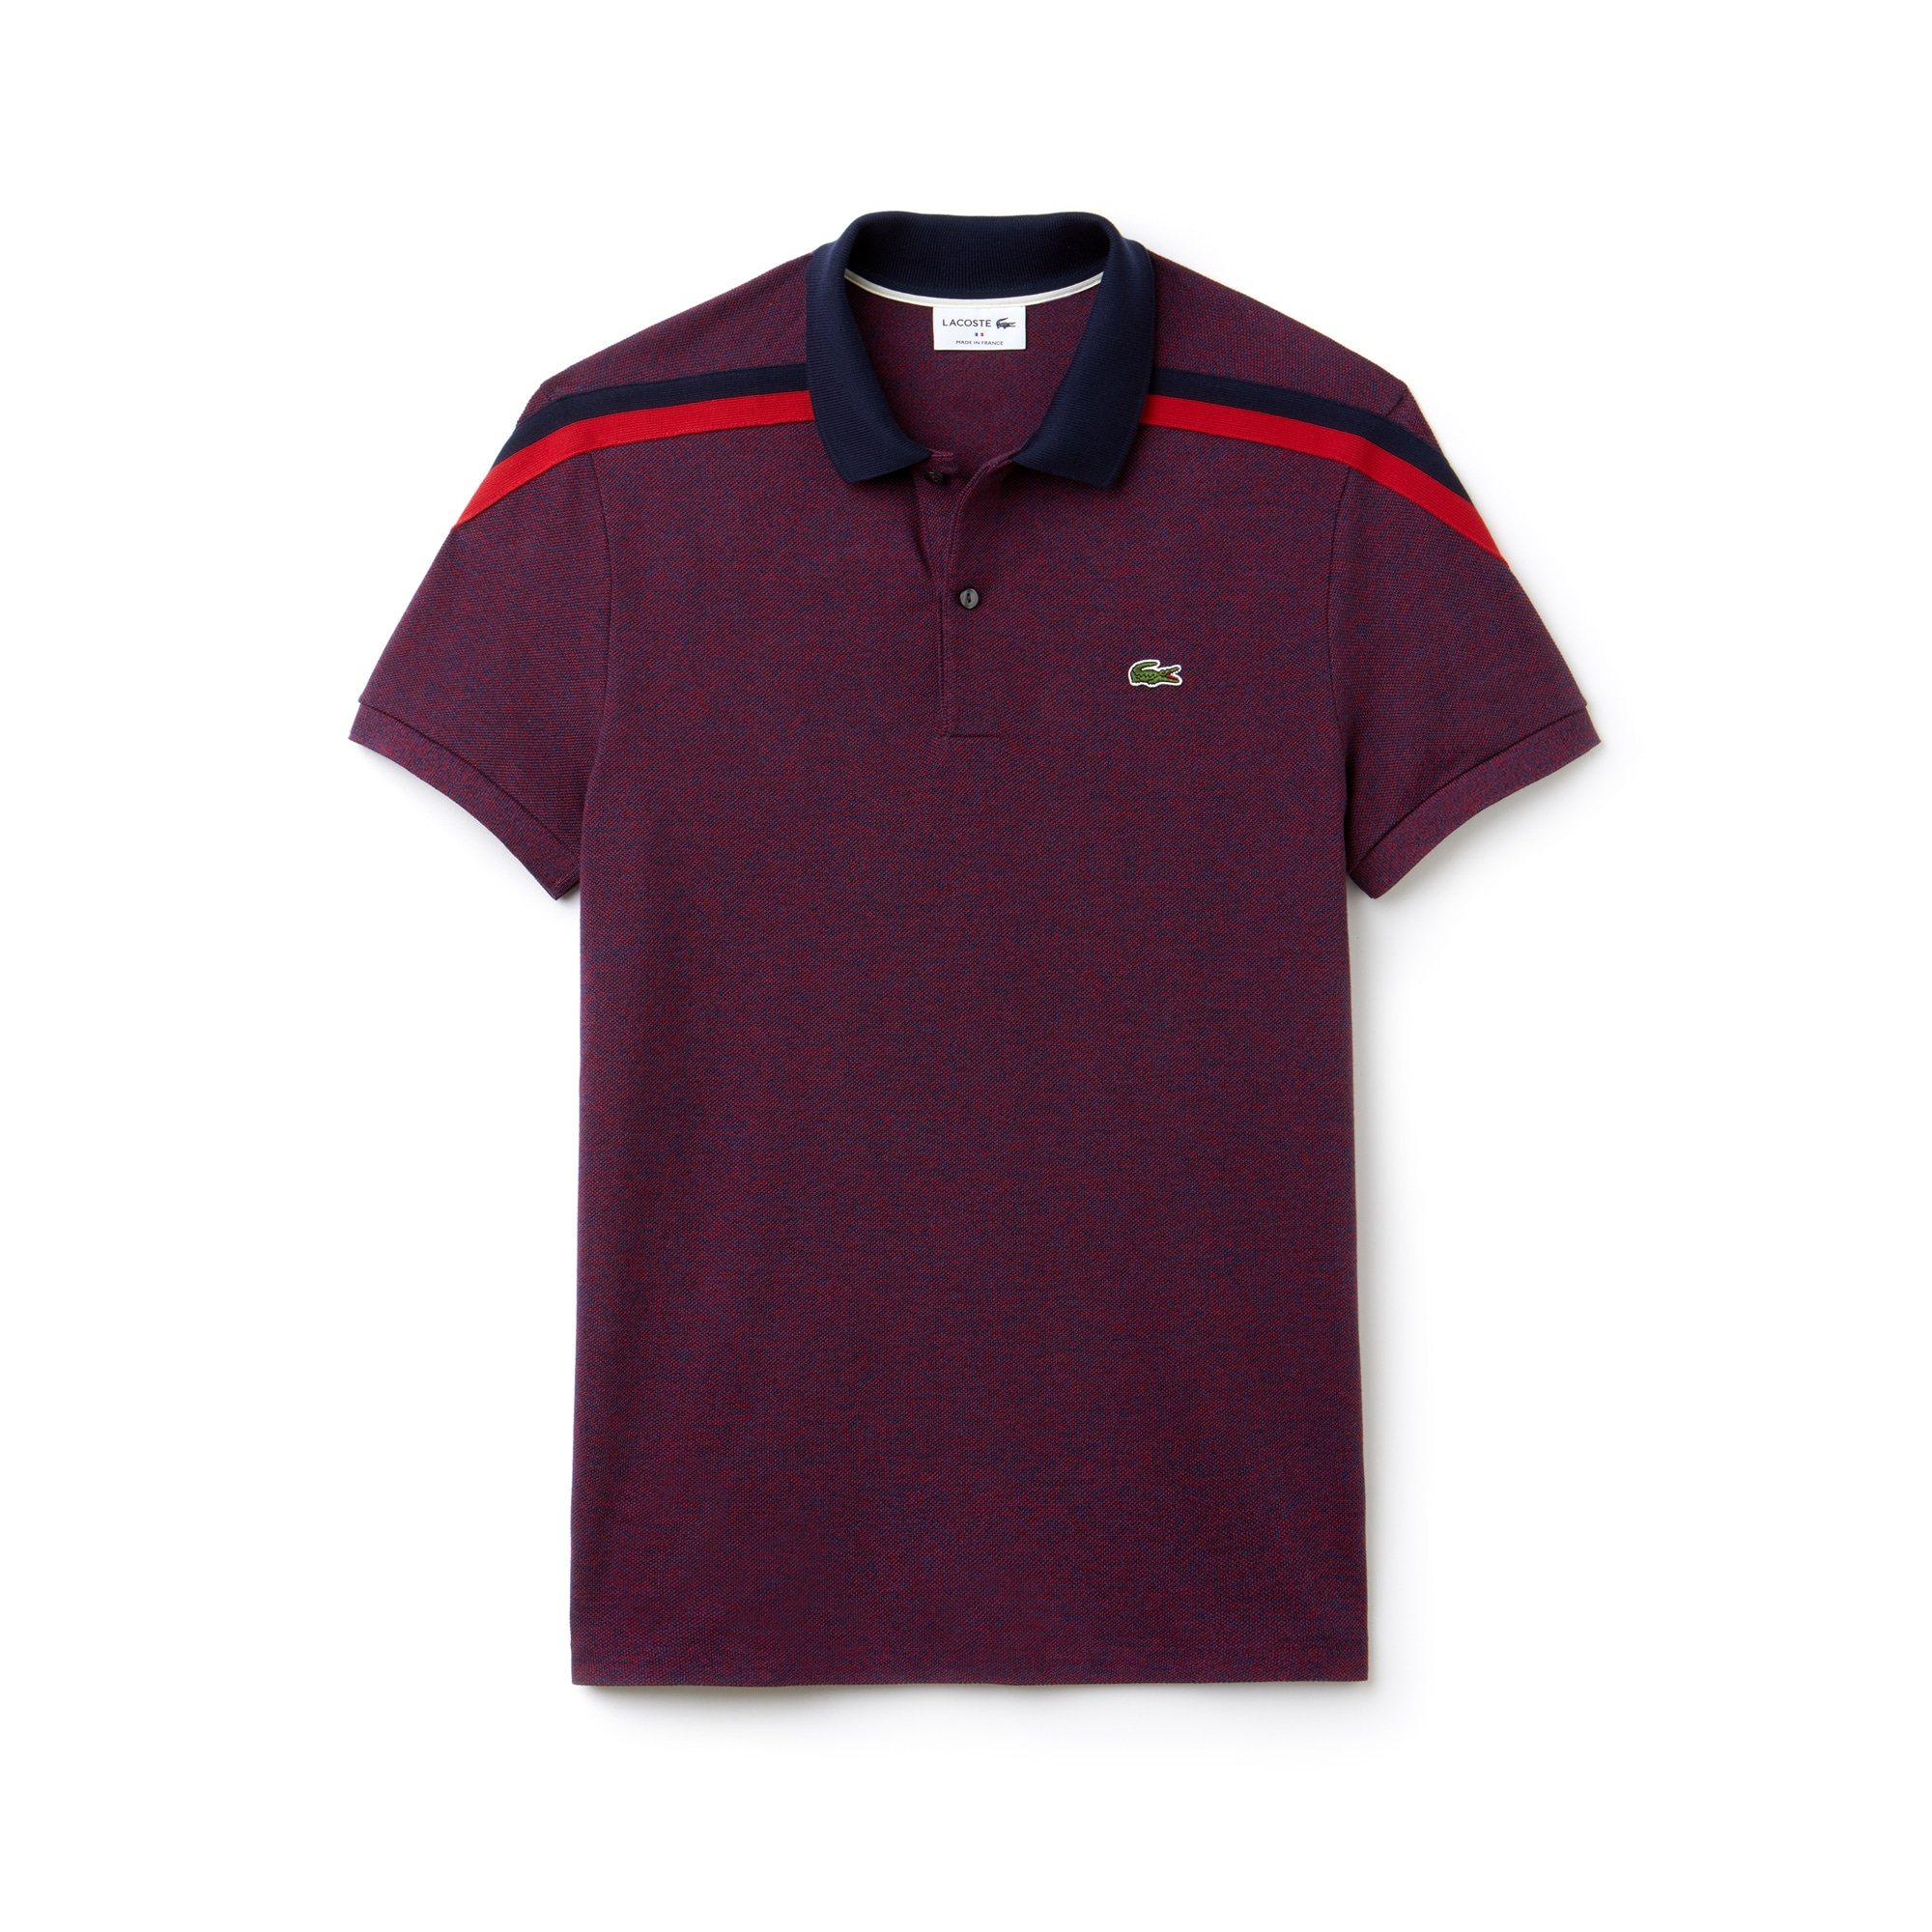 Lacoste - Polo De Hombre Lacoste Made In France Regular Fit En Piqué De Algodón - 3